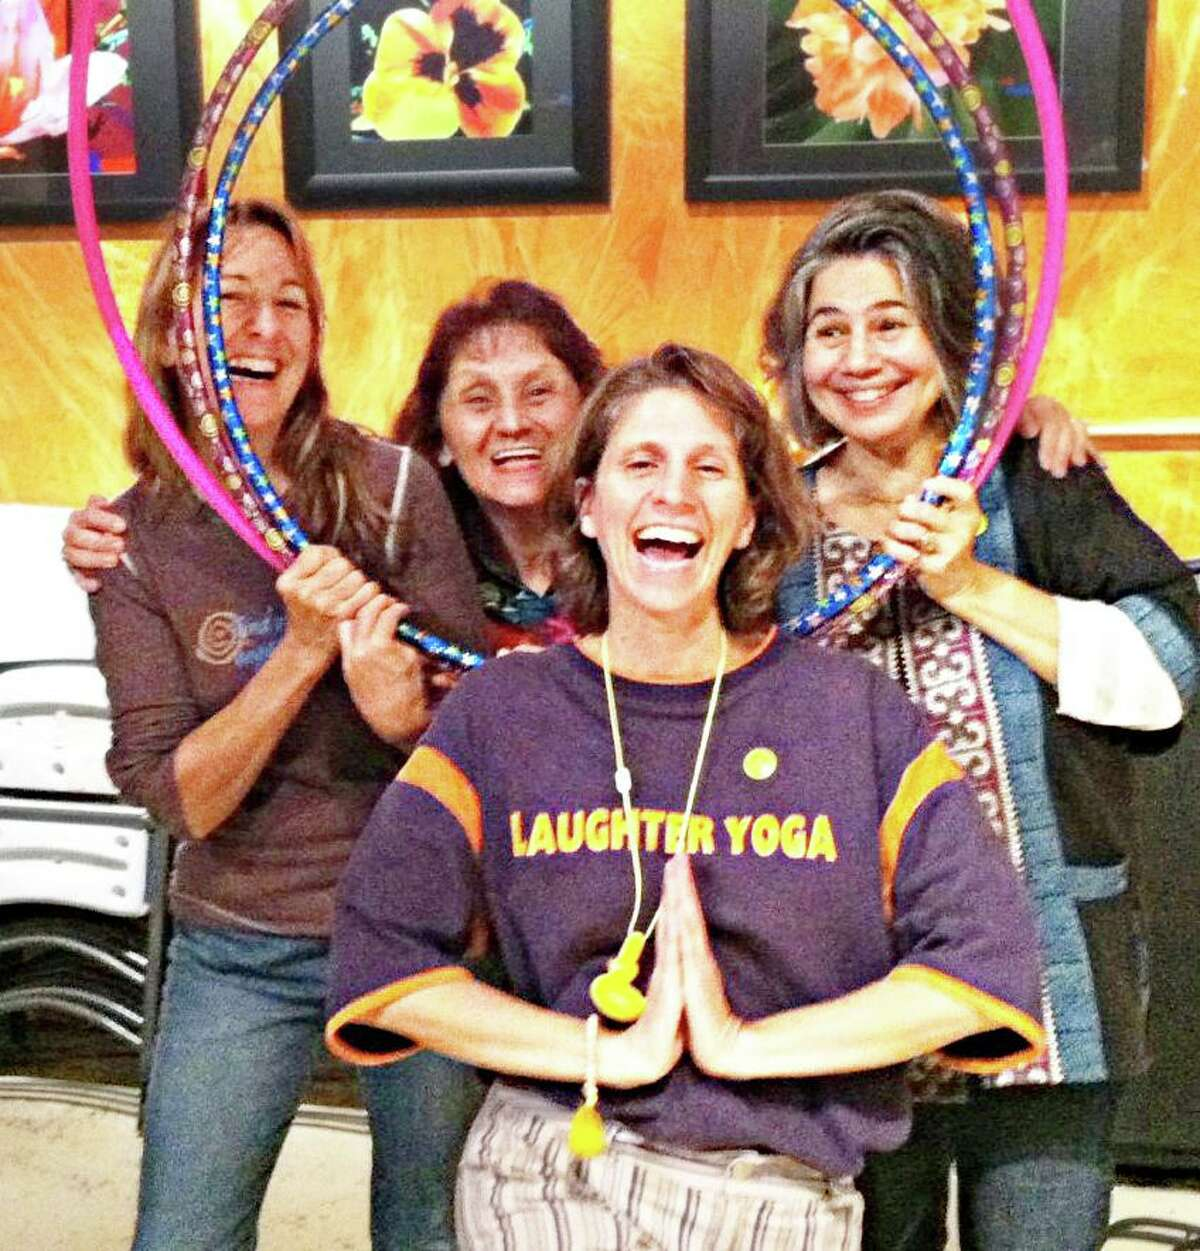 Participants in The Buttonwood Tree's Laughter Yoga program in Middletown. From left are Executive Director Anne-Marie McEwan, Flo Bartosiak, Mylène Poitras, who teaches the class, and TBT Aligned with Source leader Annaita Gandhy.